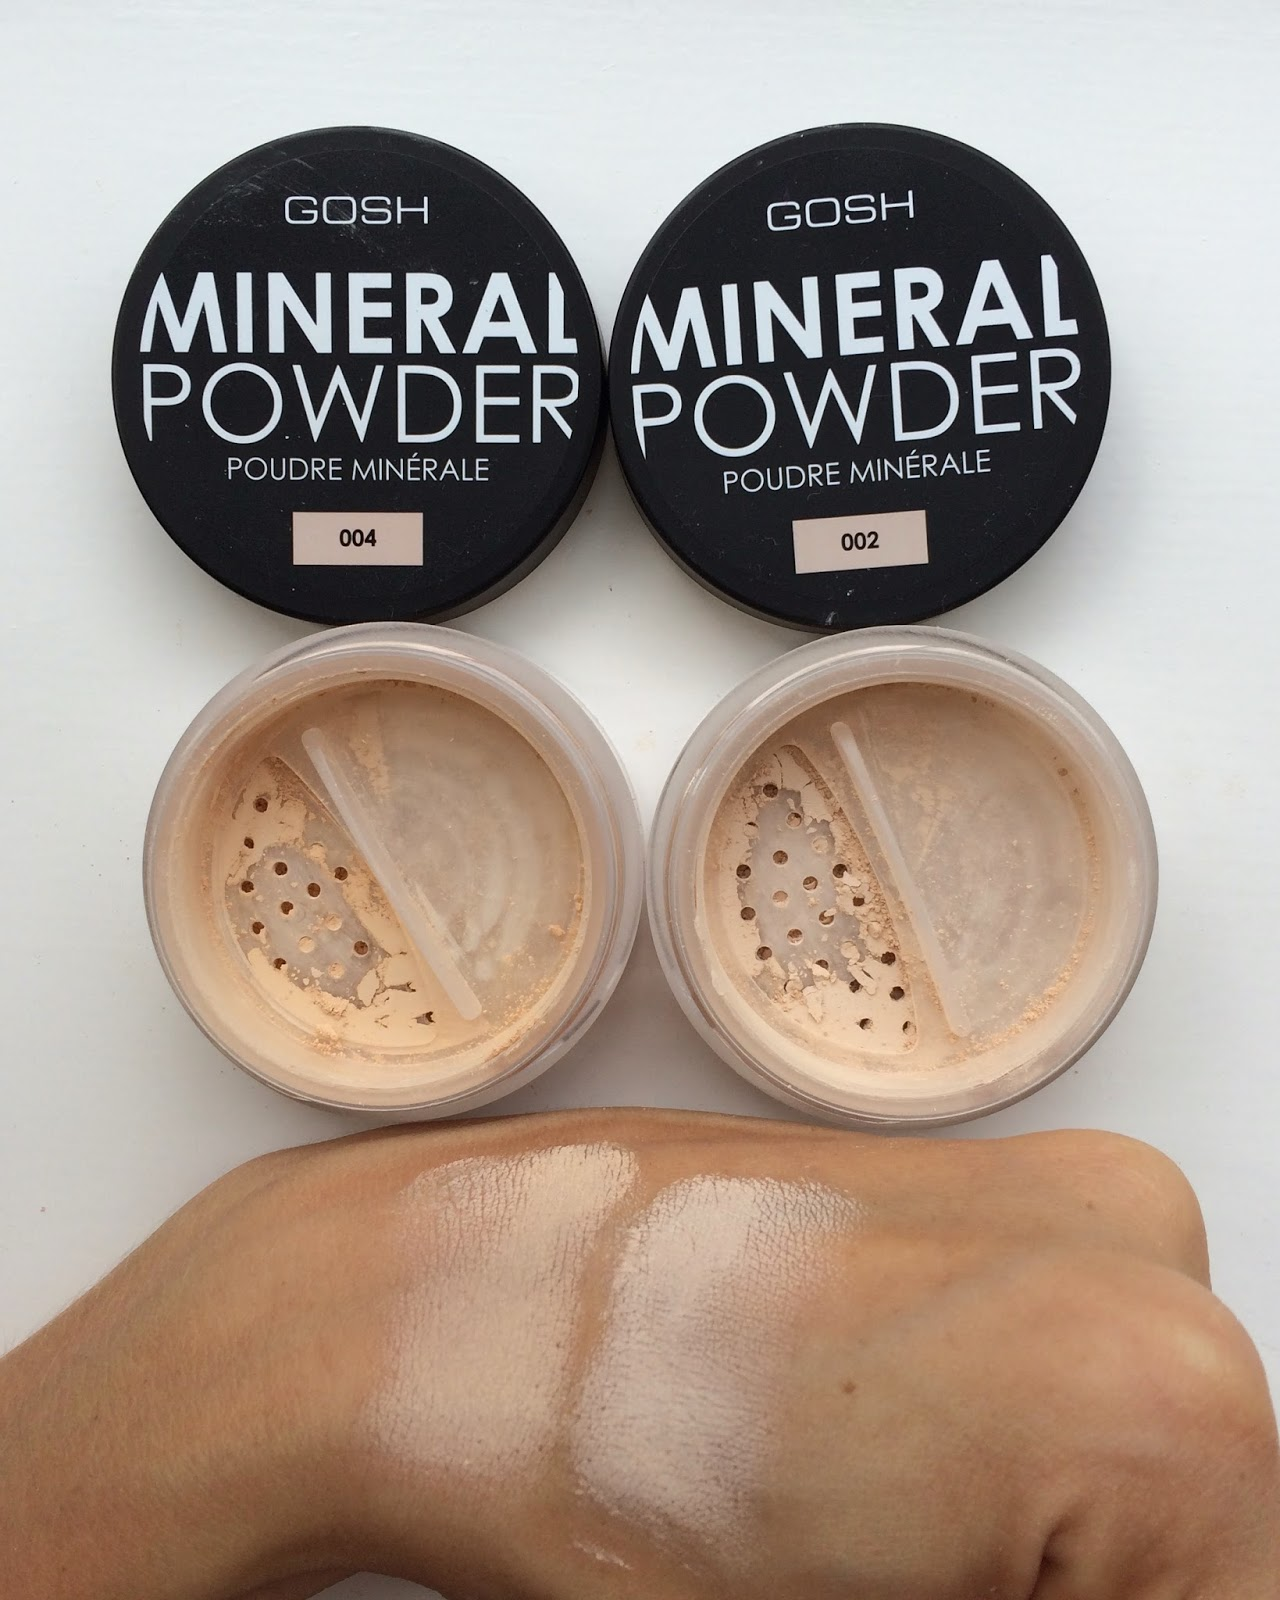 gosh-mineral-powder-review-2014-ivory-natural-swatches-on-skin